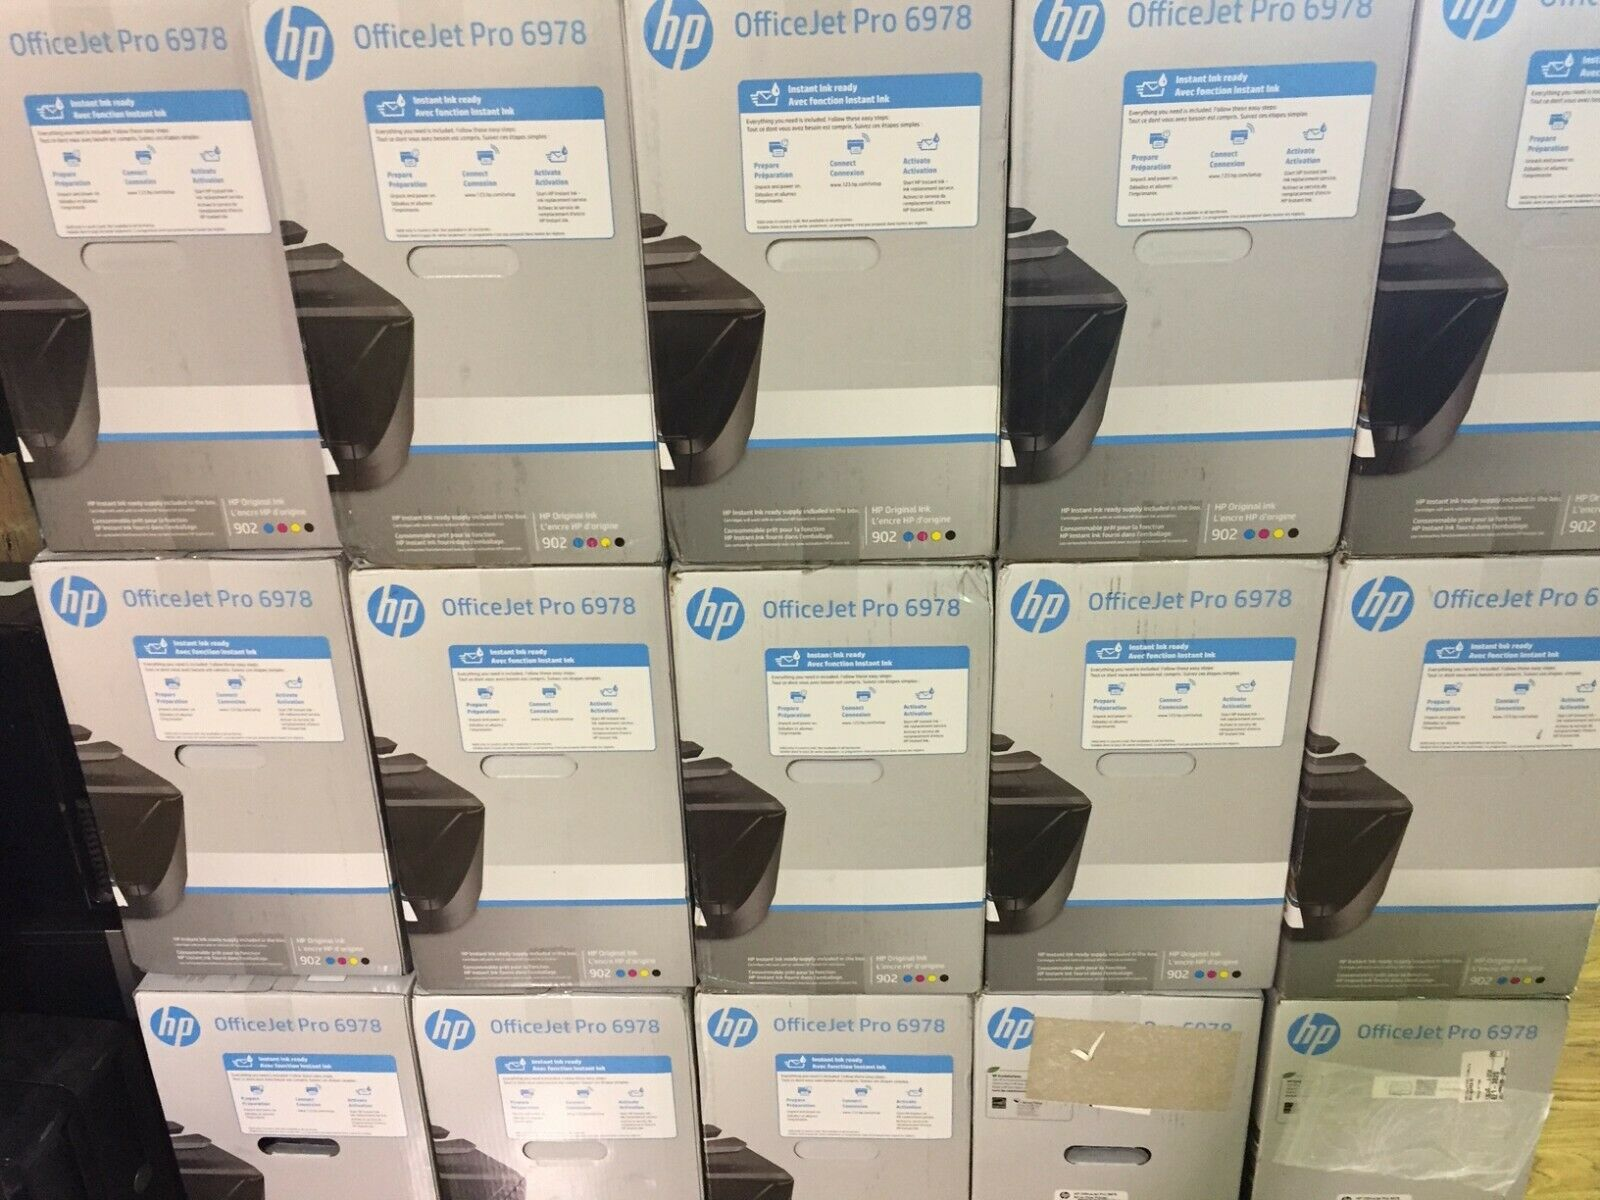 Brand New Sealed HP OfficeJet Pro 6978 All-in-One Wireless Printer-Ships Today. Buy it now for 147.99